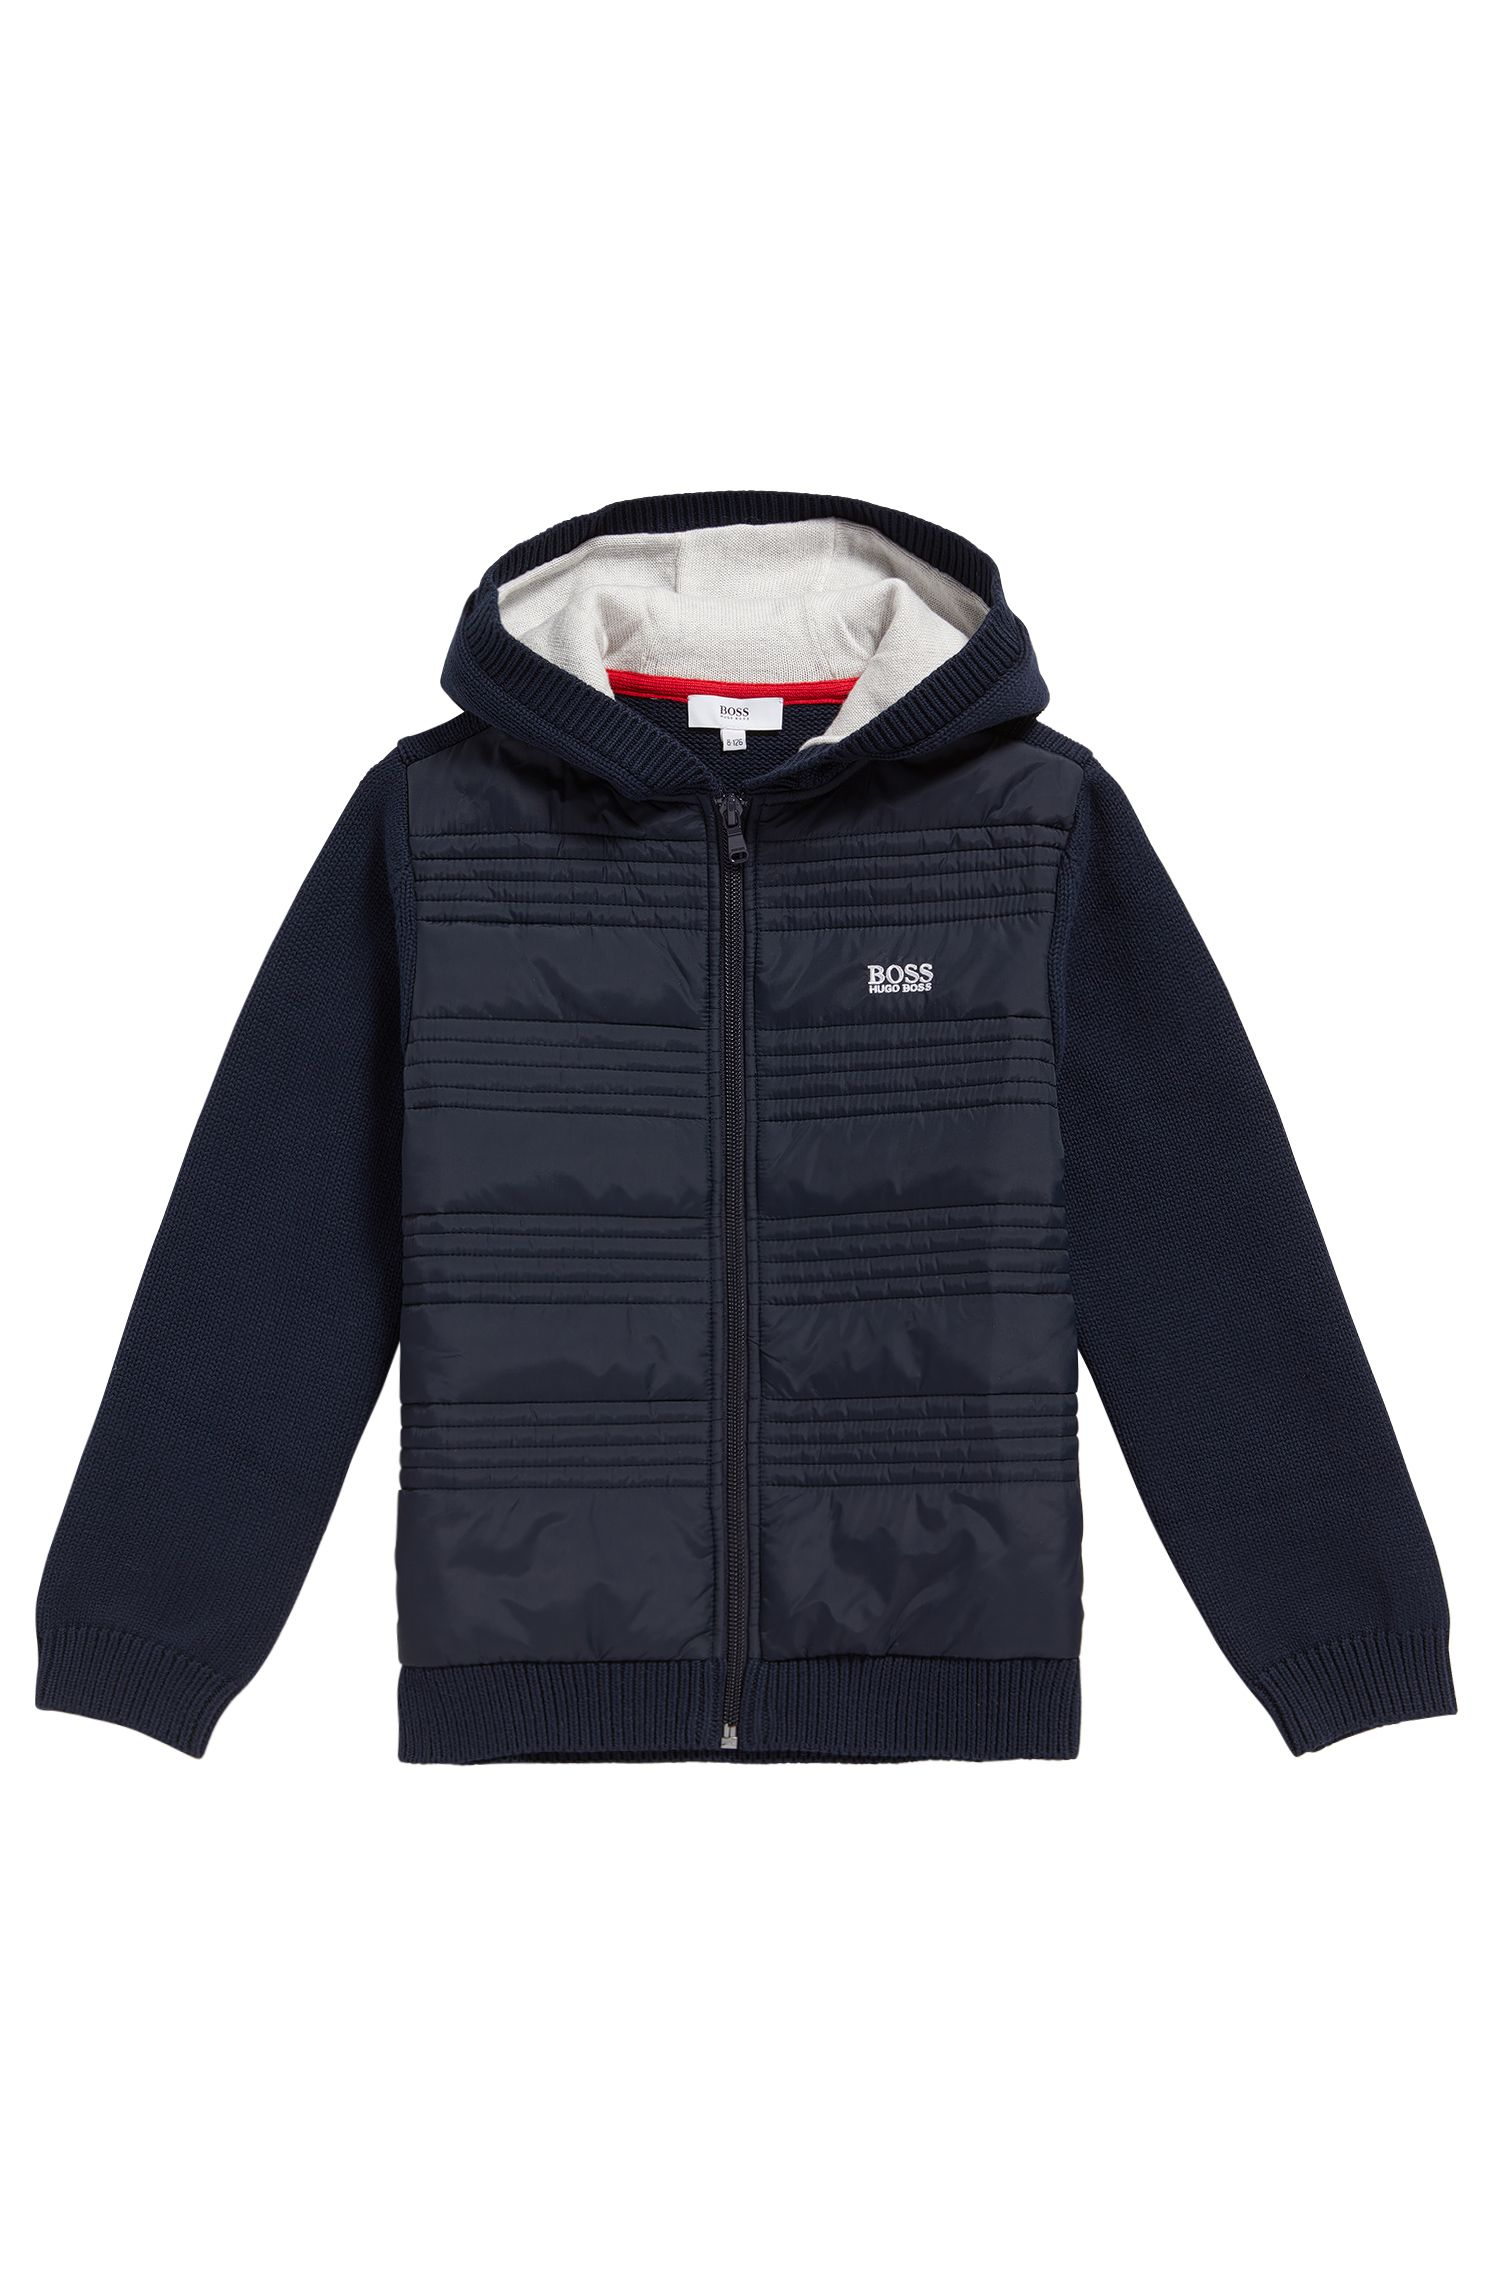 'J25A23'   Boys Cotton Woven Hooded Sweater Jacket